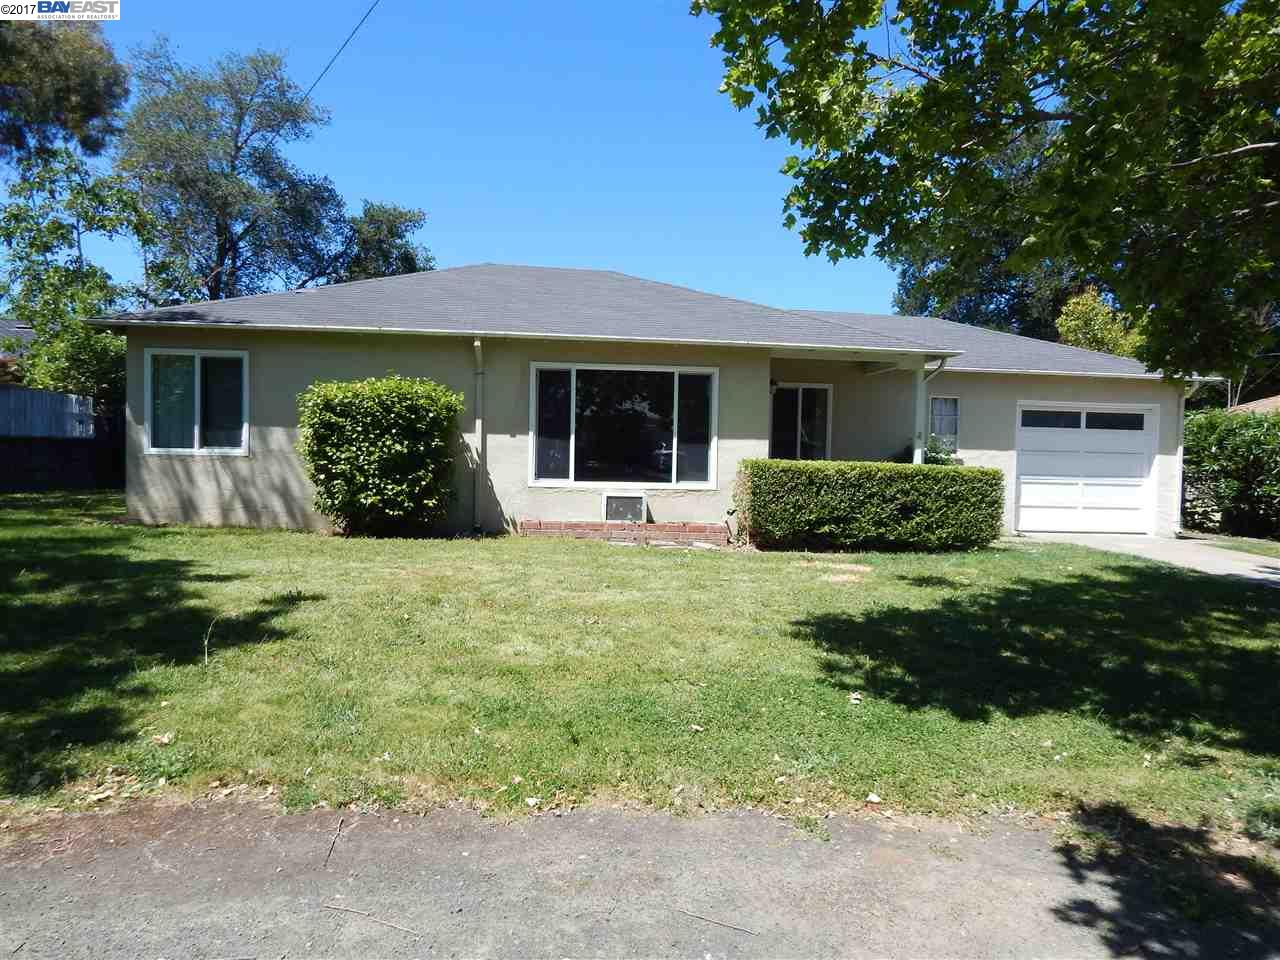 Single Family Home for Sale at 2056 El Sereno Avenue Los Altos, California 94024 United States